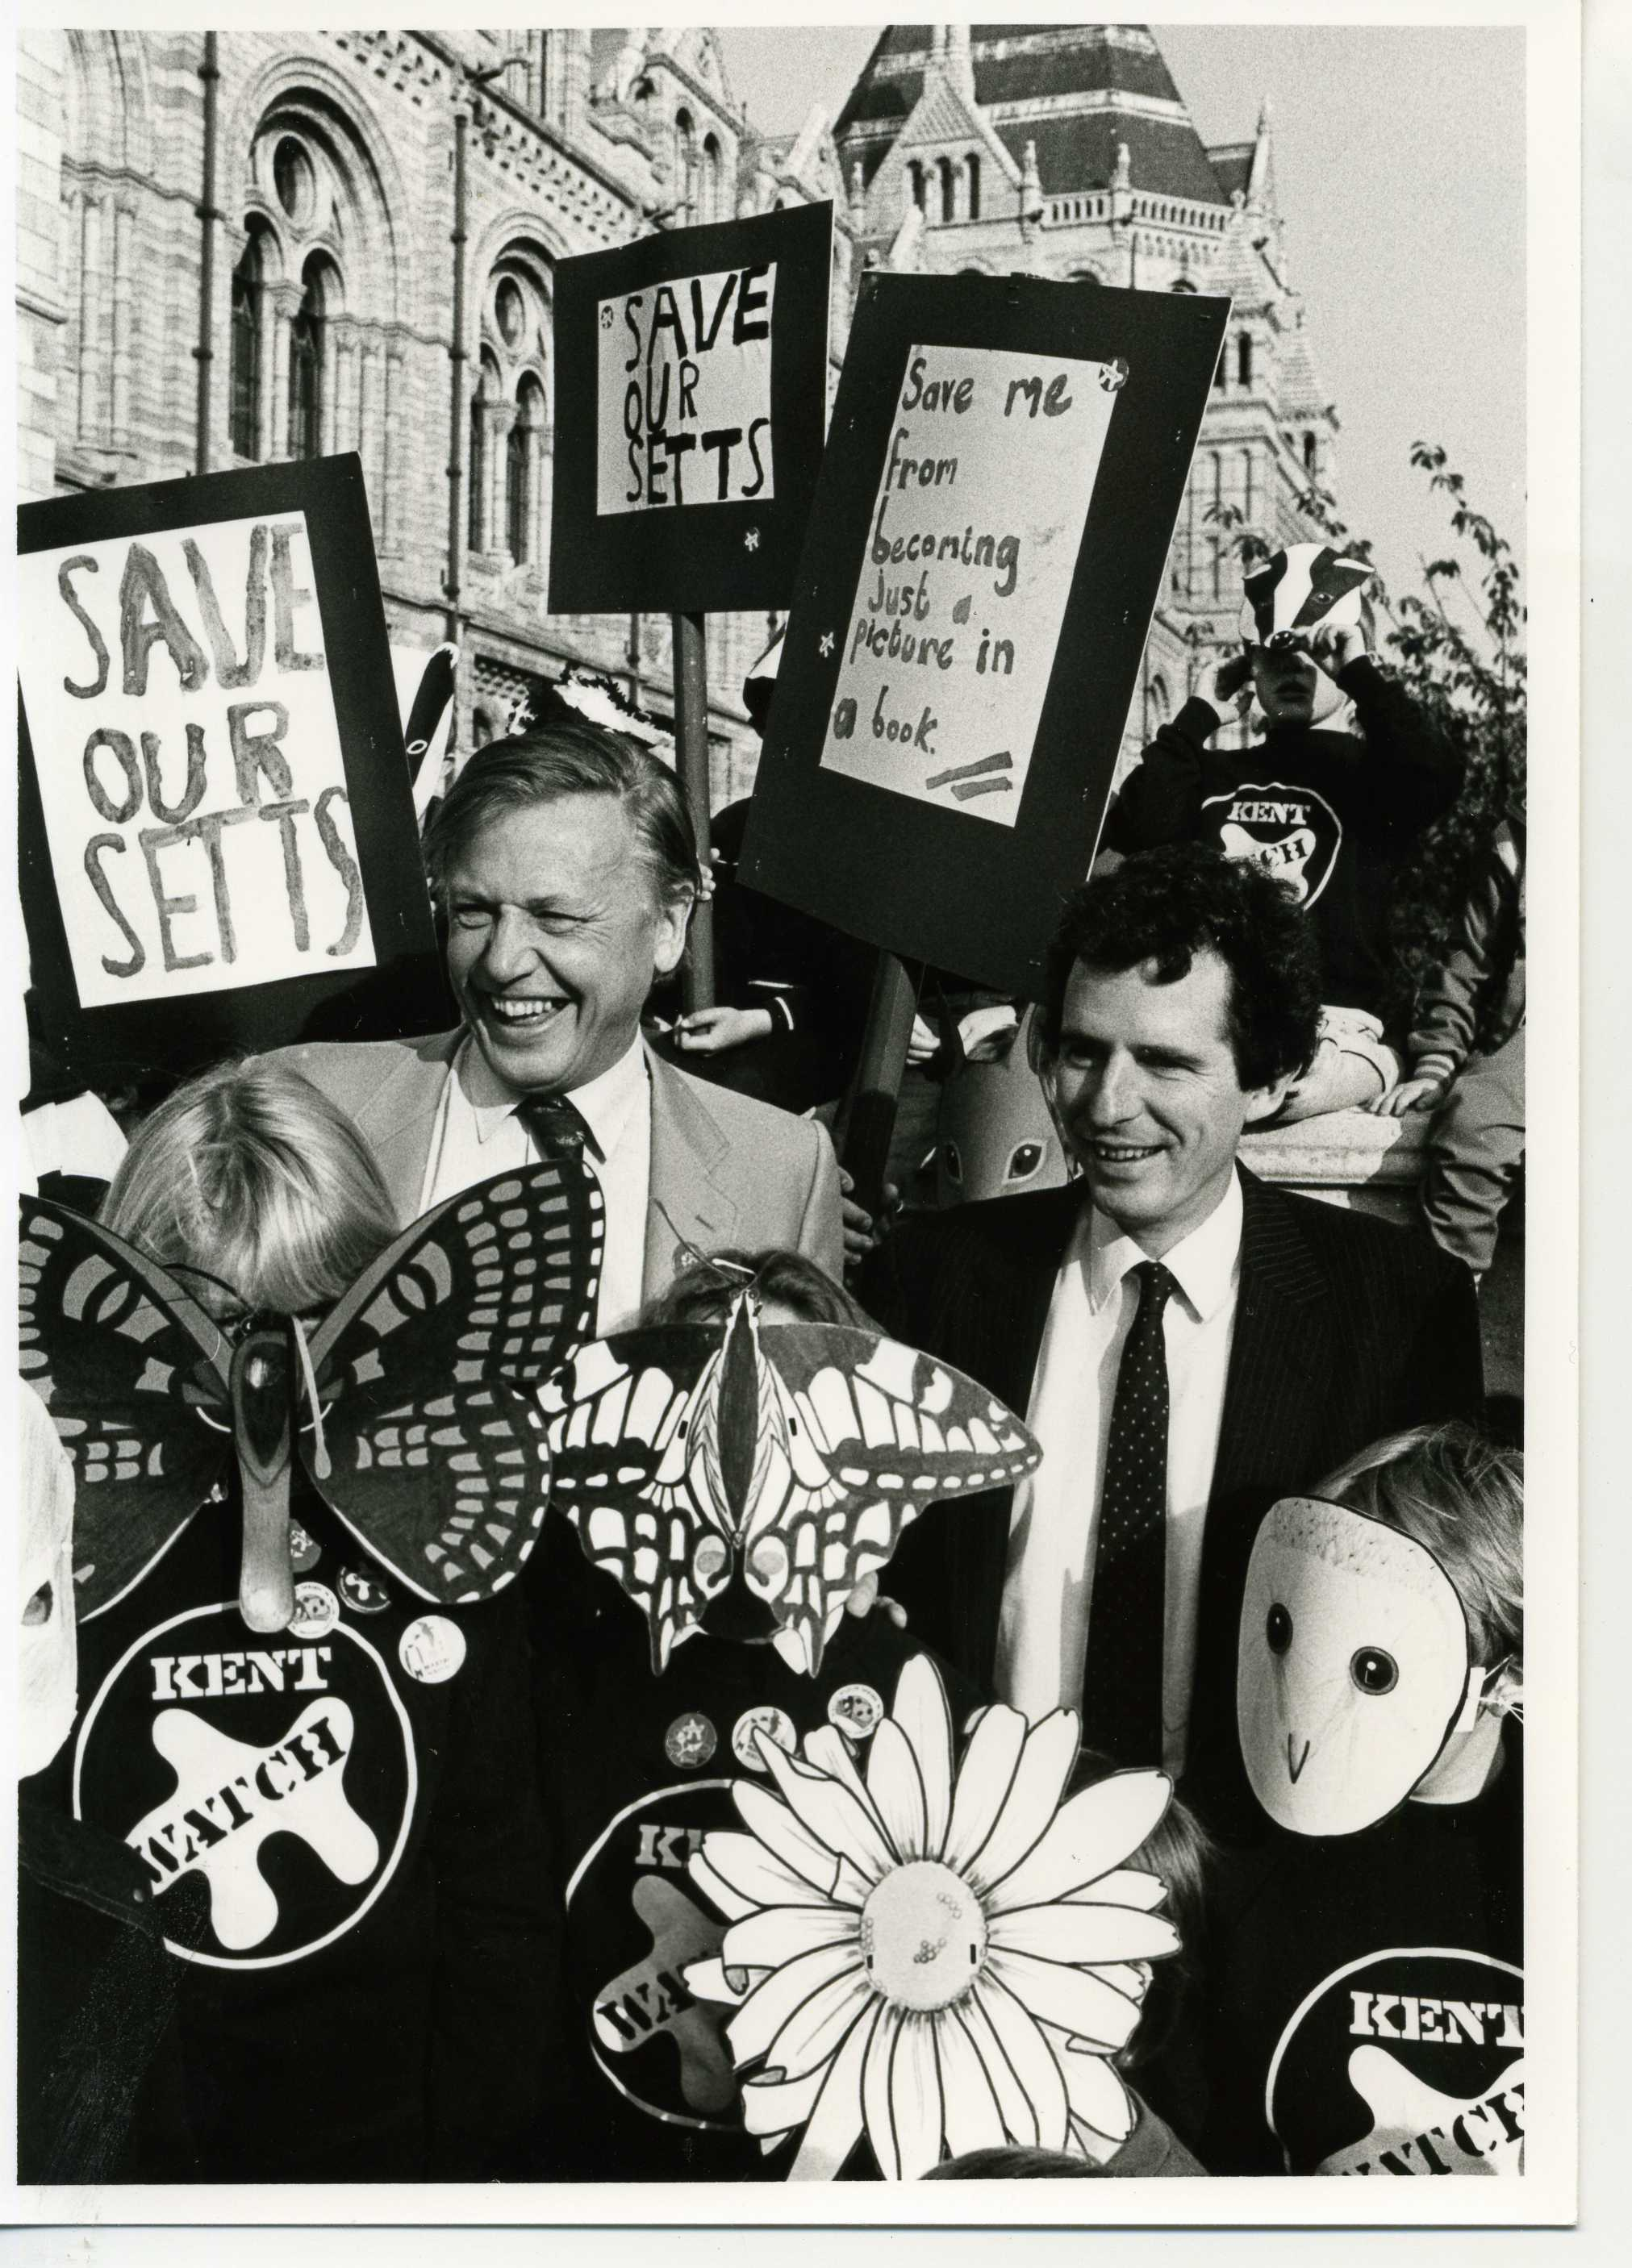 1985 with environmentMinister William Waldegrave and Badger supporters. How times change... Photo: the Wildlife Trusts